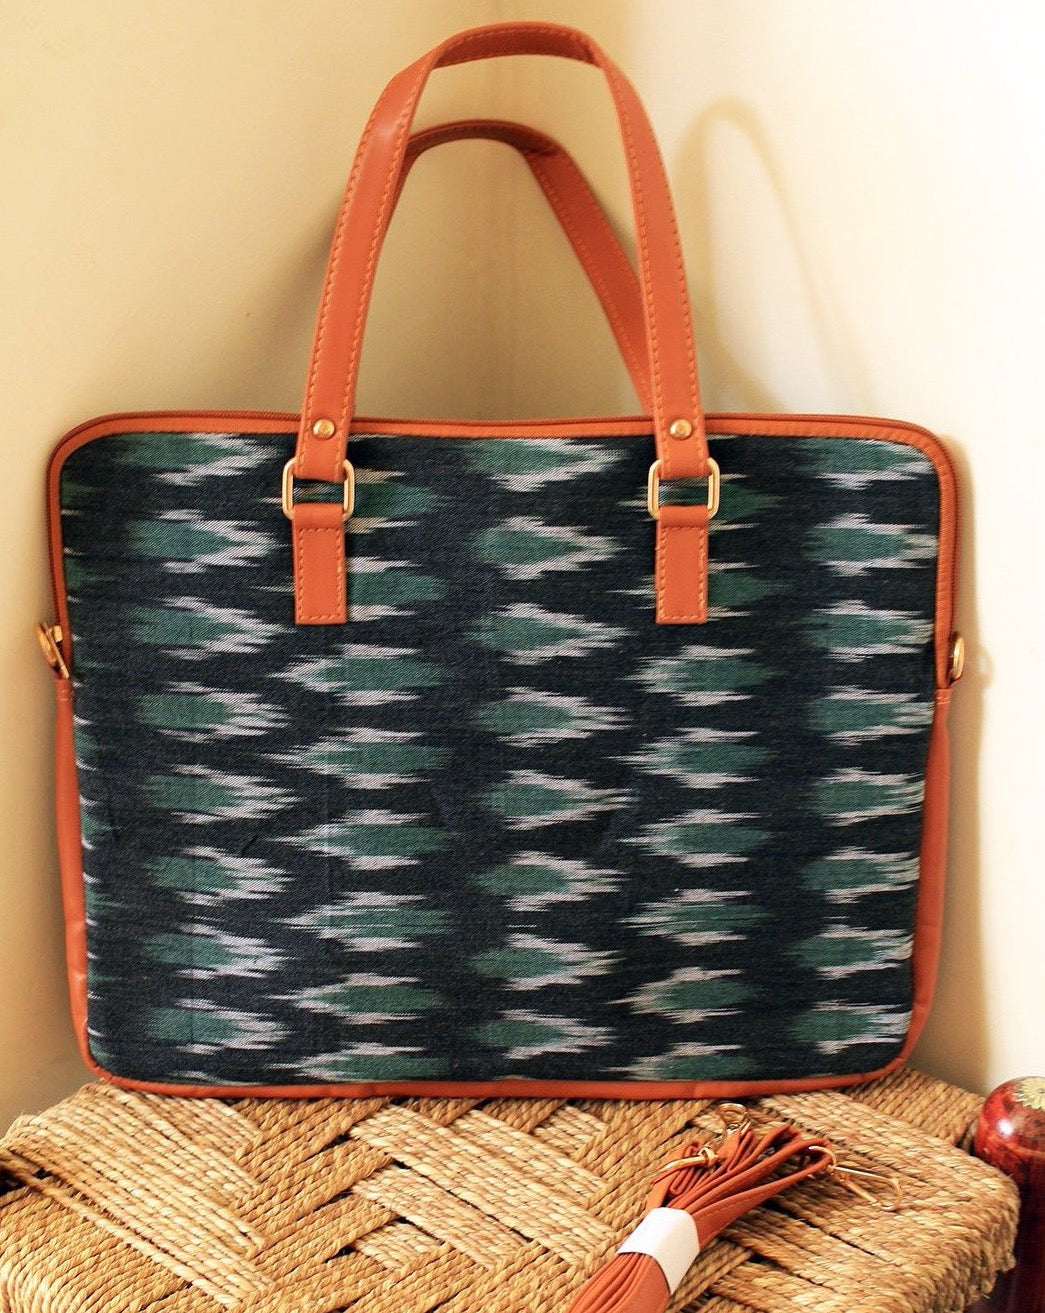 Black and Green Handloom Ikkat Cotton Laptop Bag with Adjustable Belt